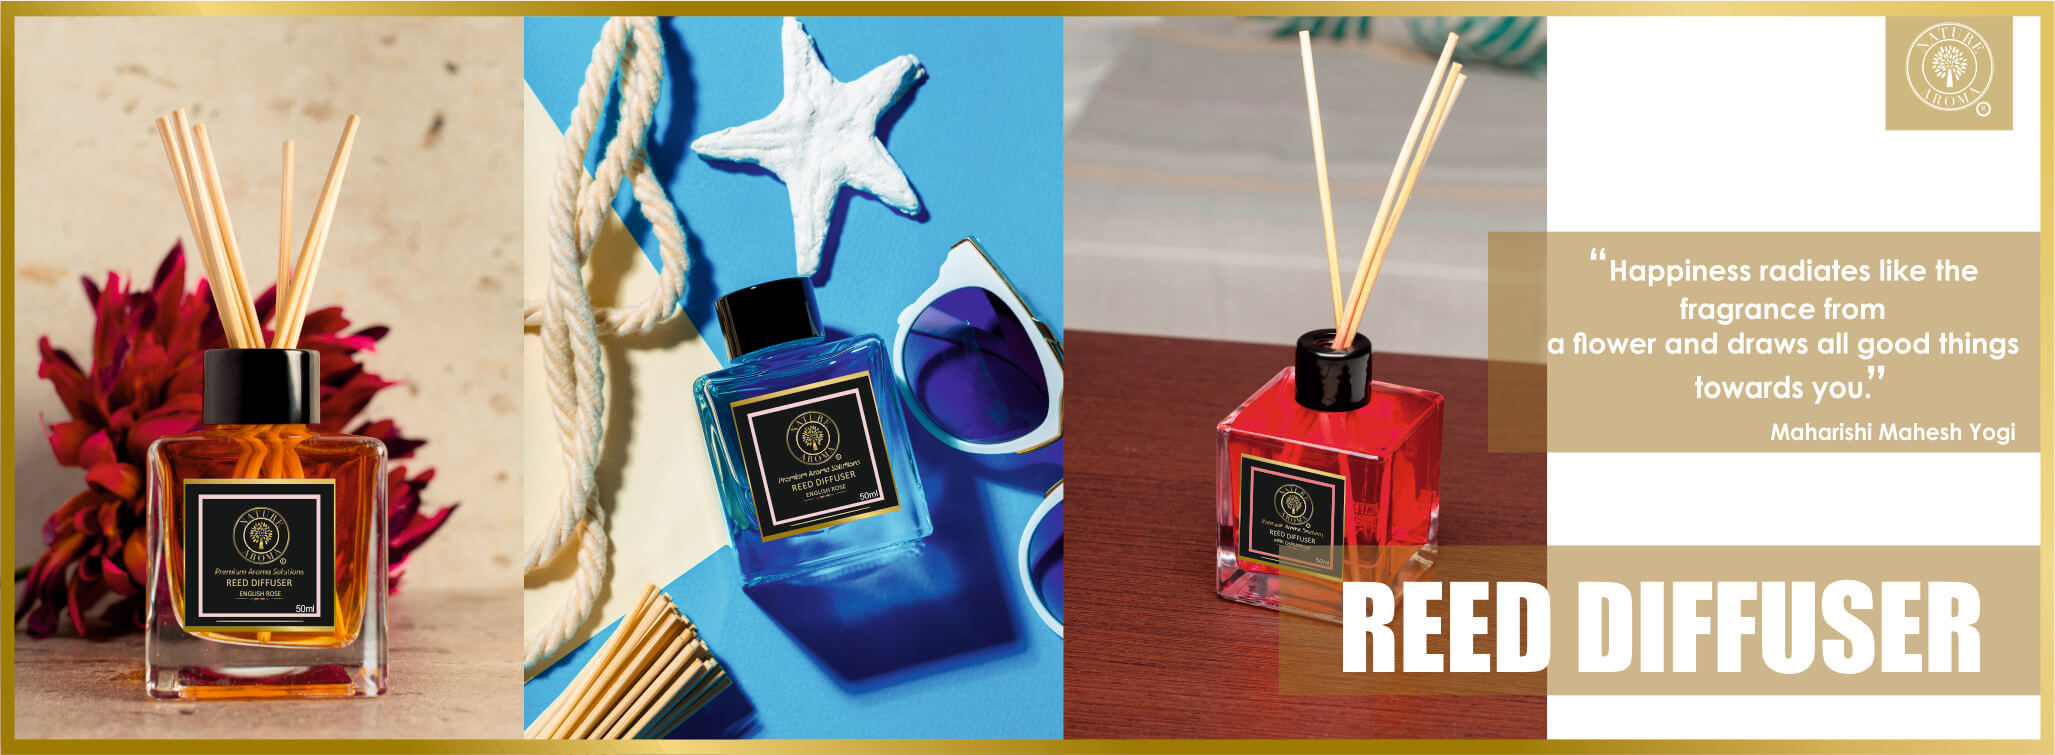 REED DIFFUSER _HOMEPAGE